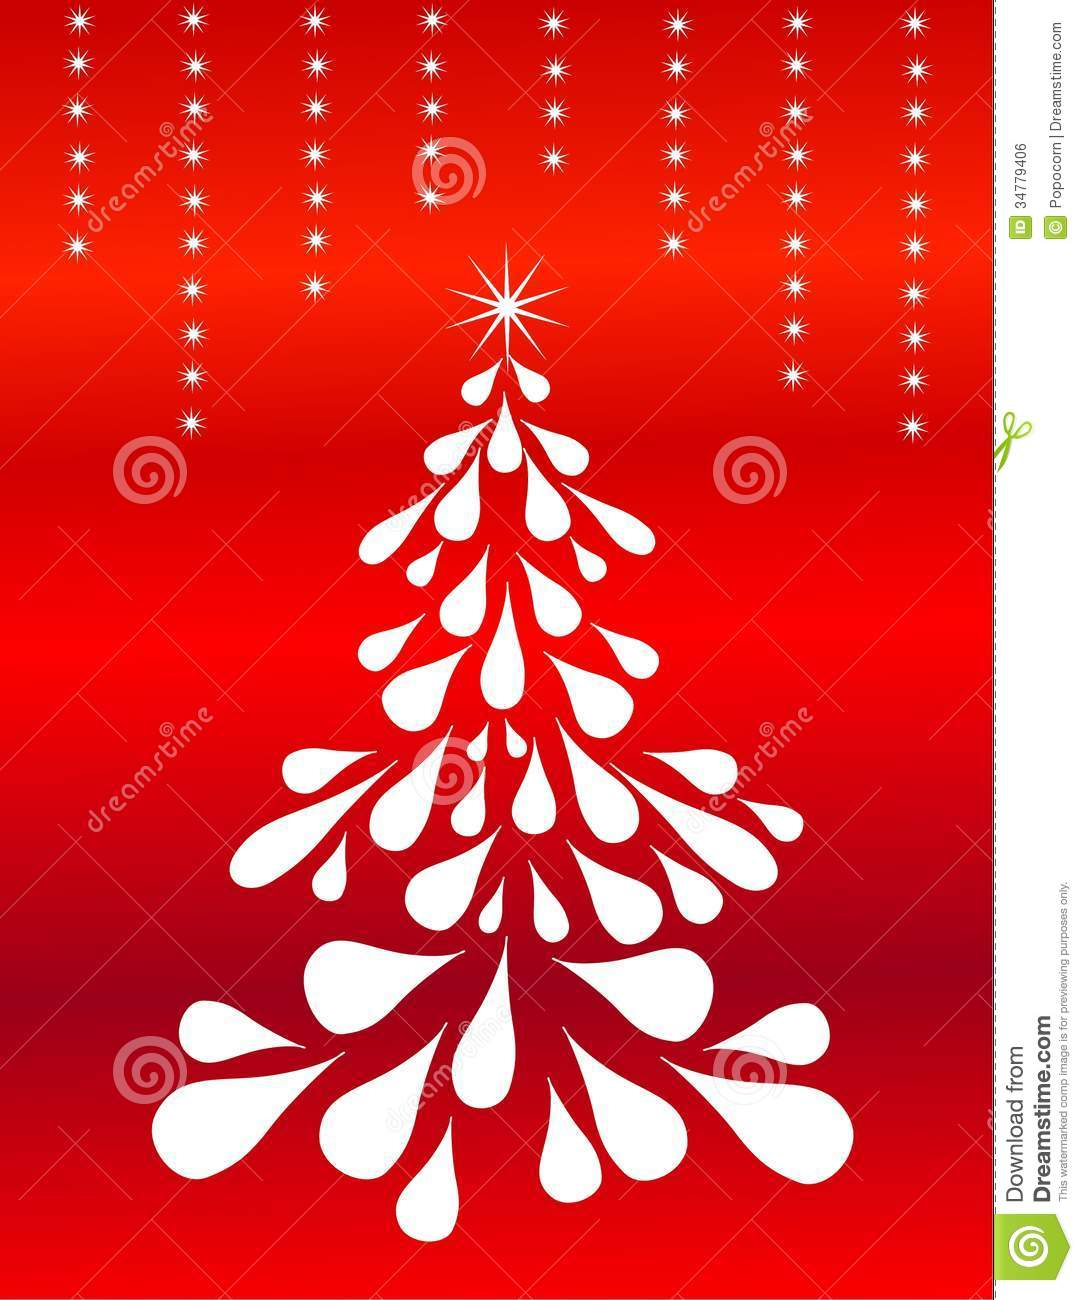 Merry Christmas Happy Holidays Royalty Free Stock Image